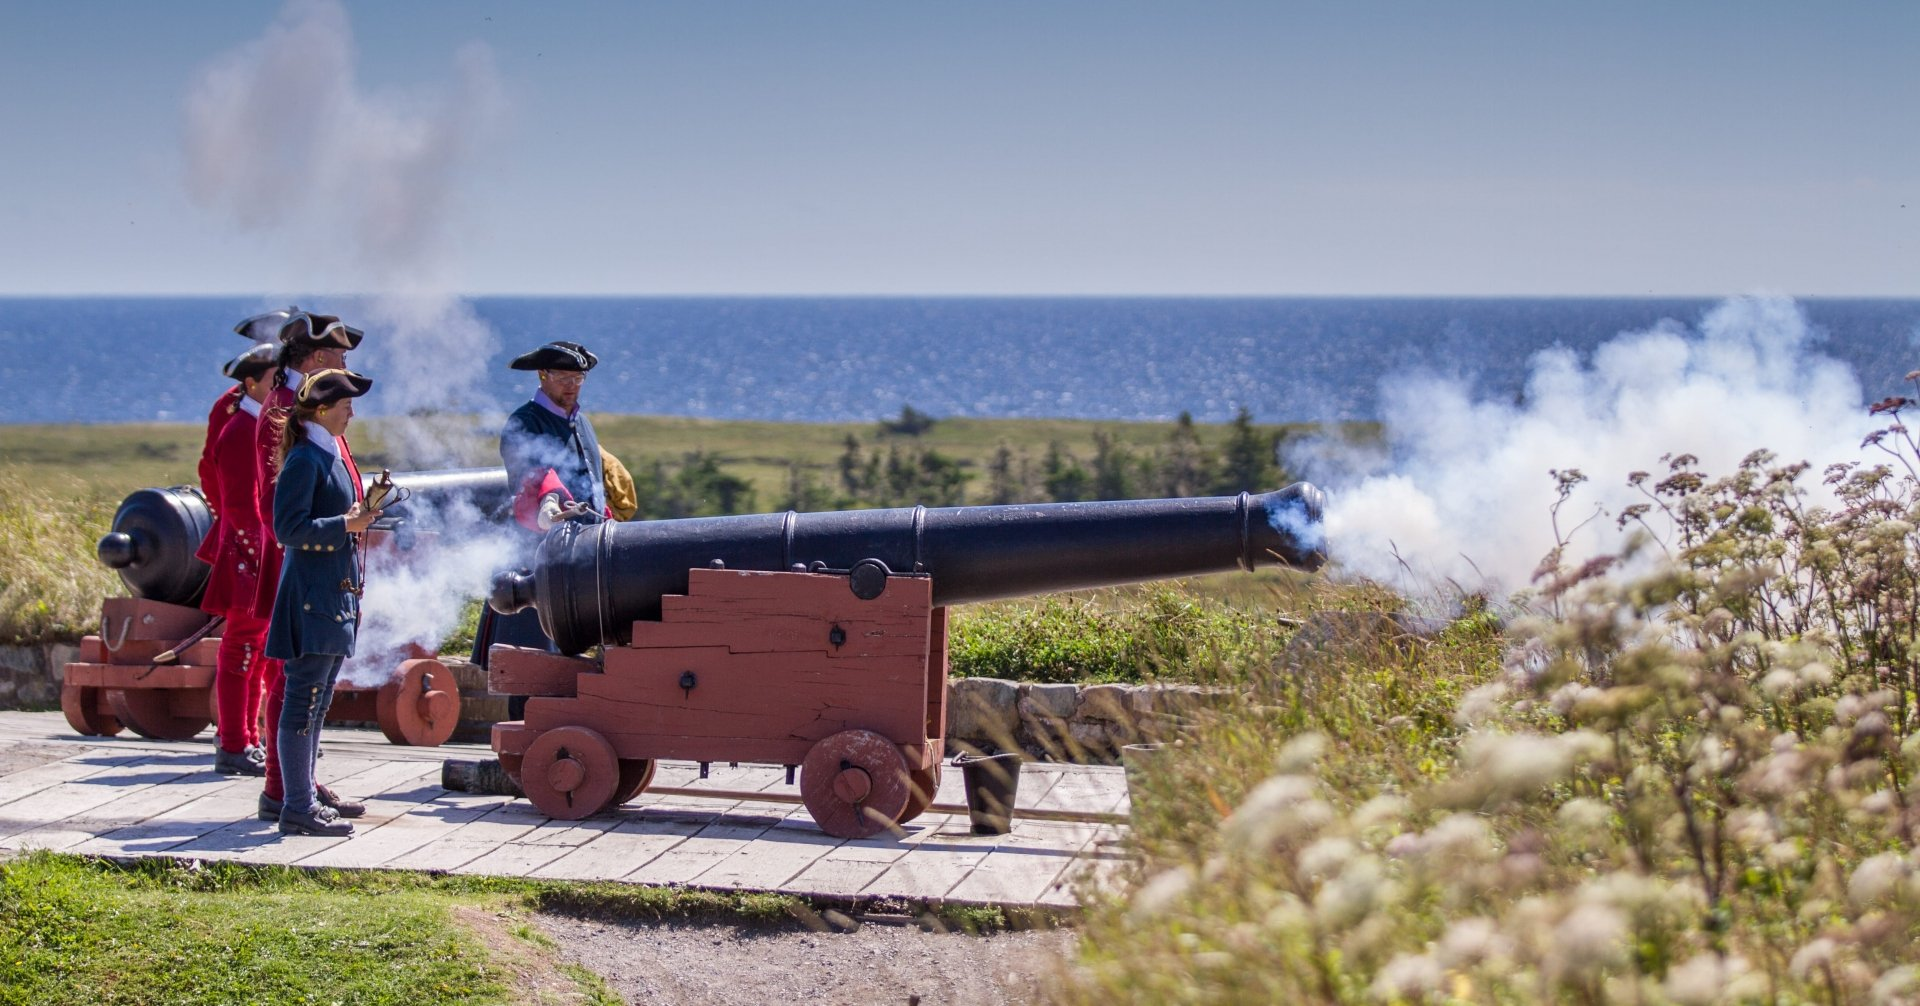 Men in period clothes set off a cannon